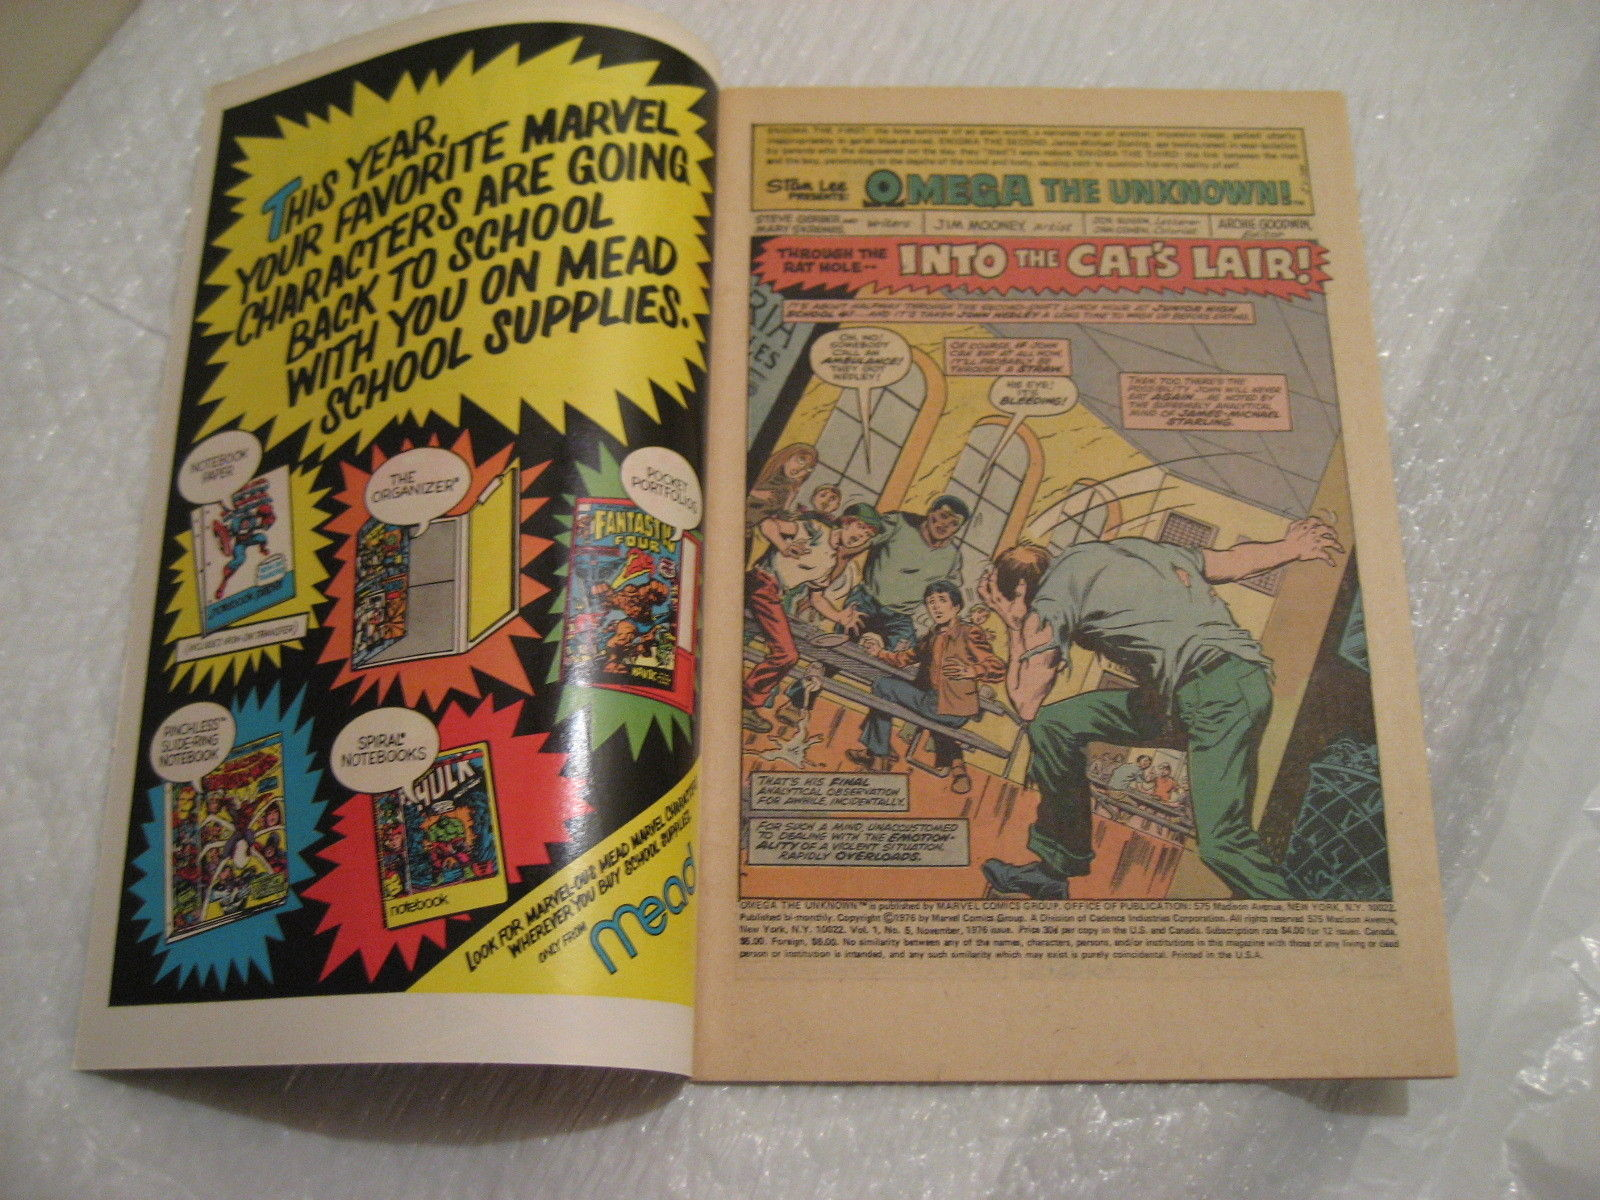 OMEGA THE UNKNOWN #5 marvel comics very fine condition 1976